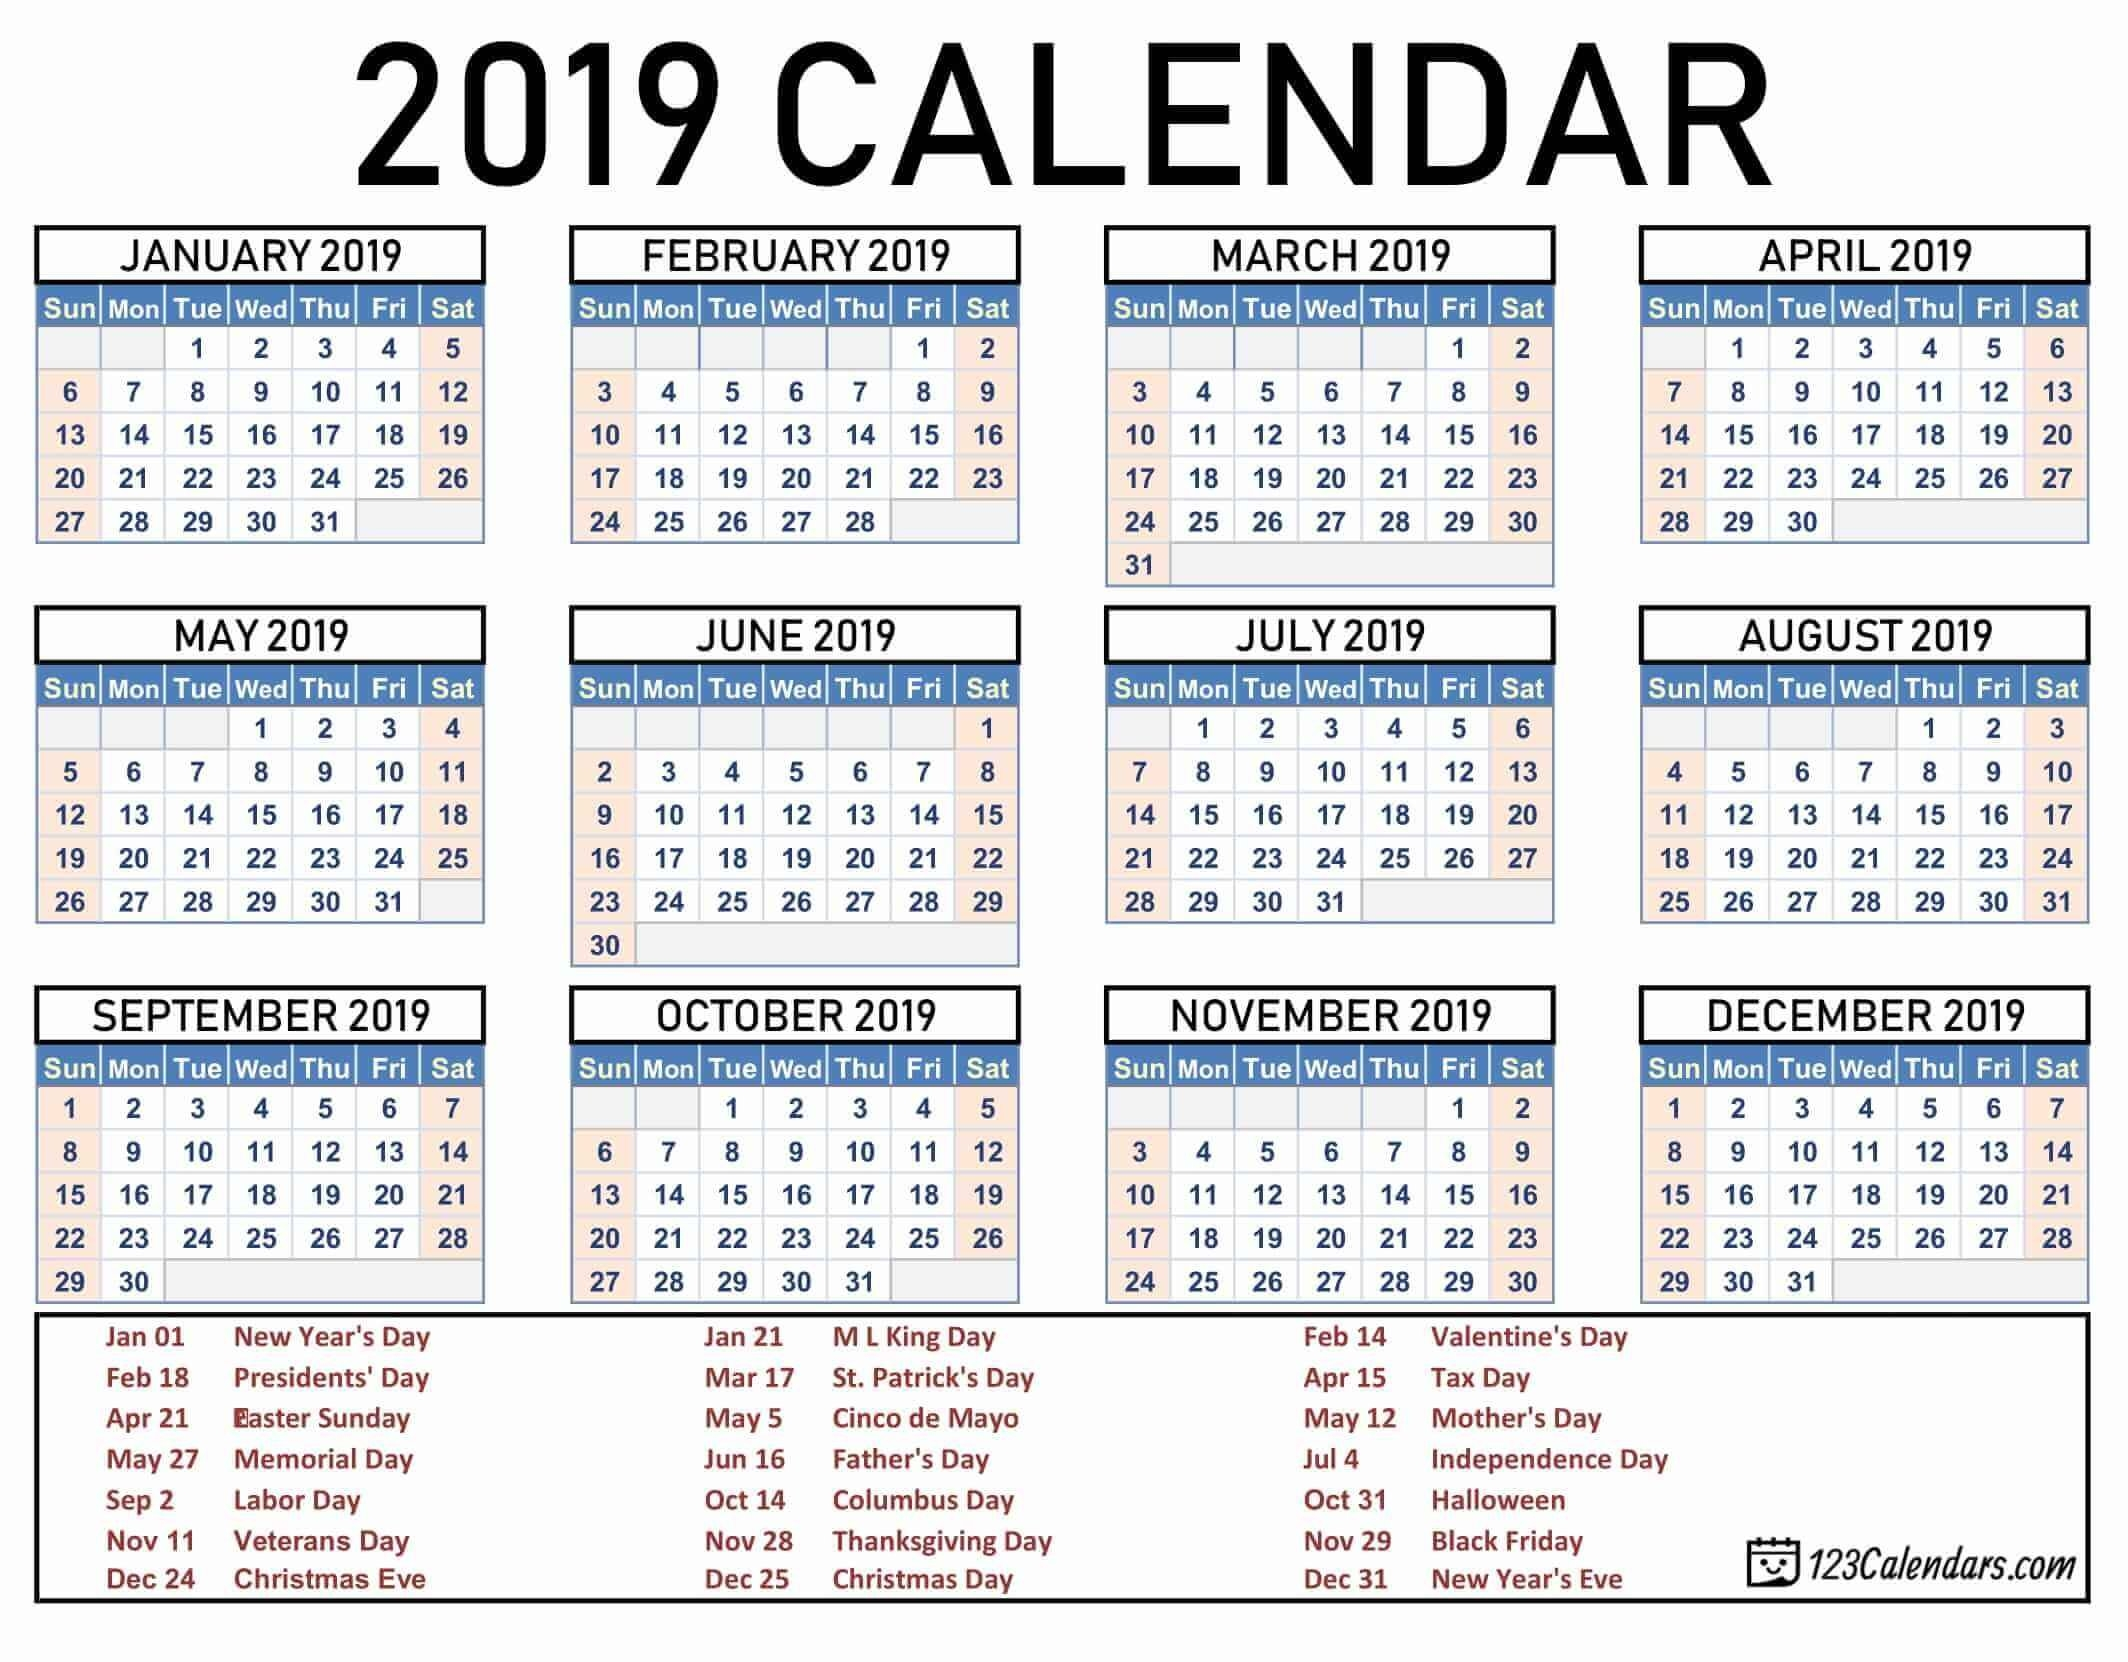 2019 Printable Calendar - 123Calendars Images Of A 2019 Calendar